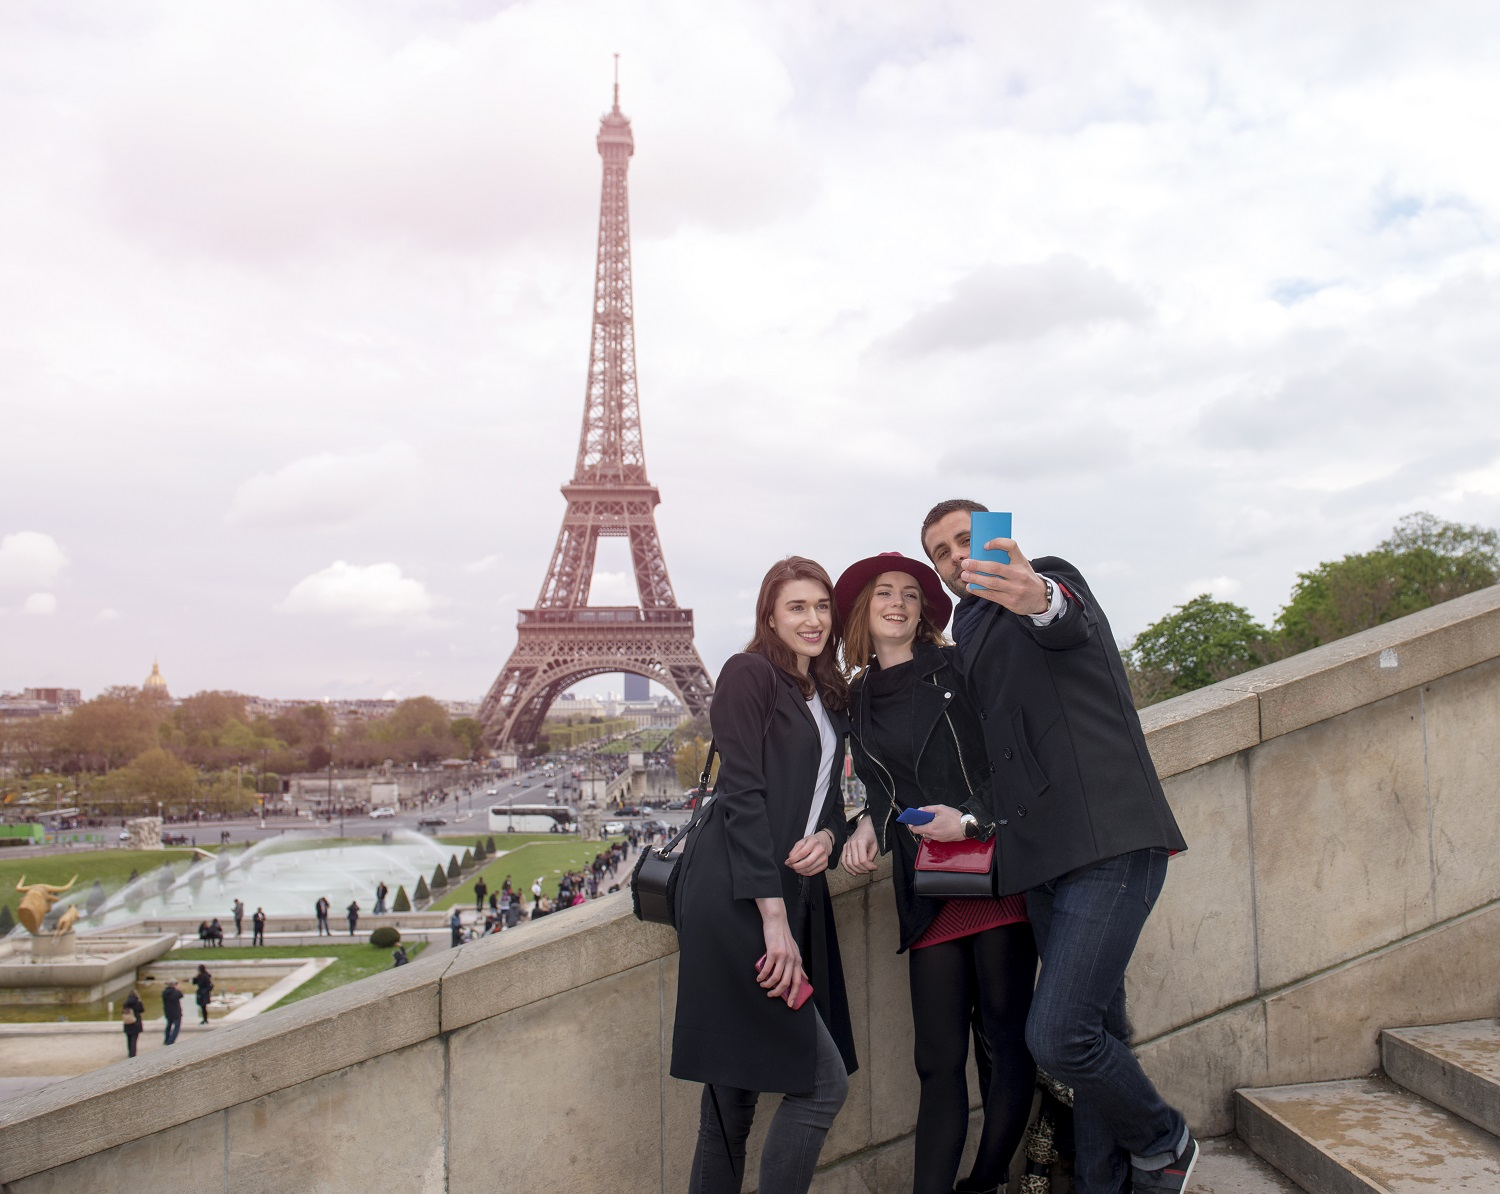 Portrait of friends using smartphone to take self portrait near the Eiffel Tower.